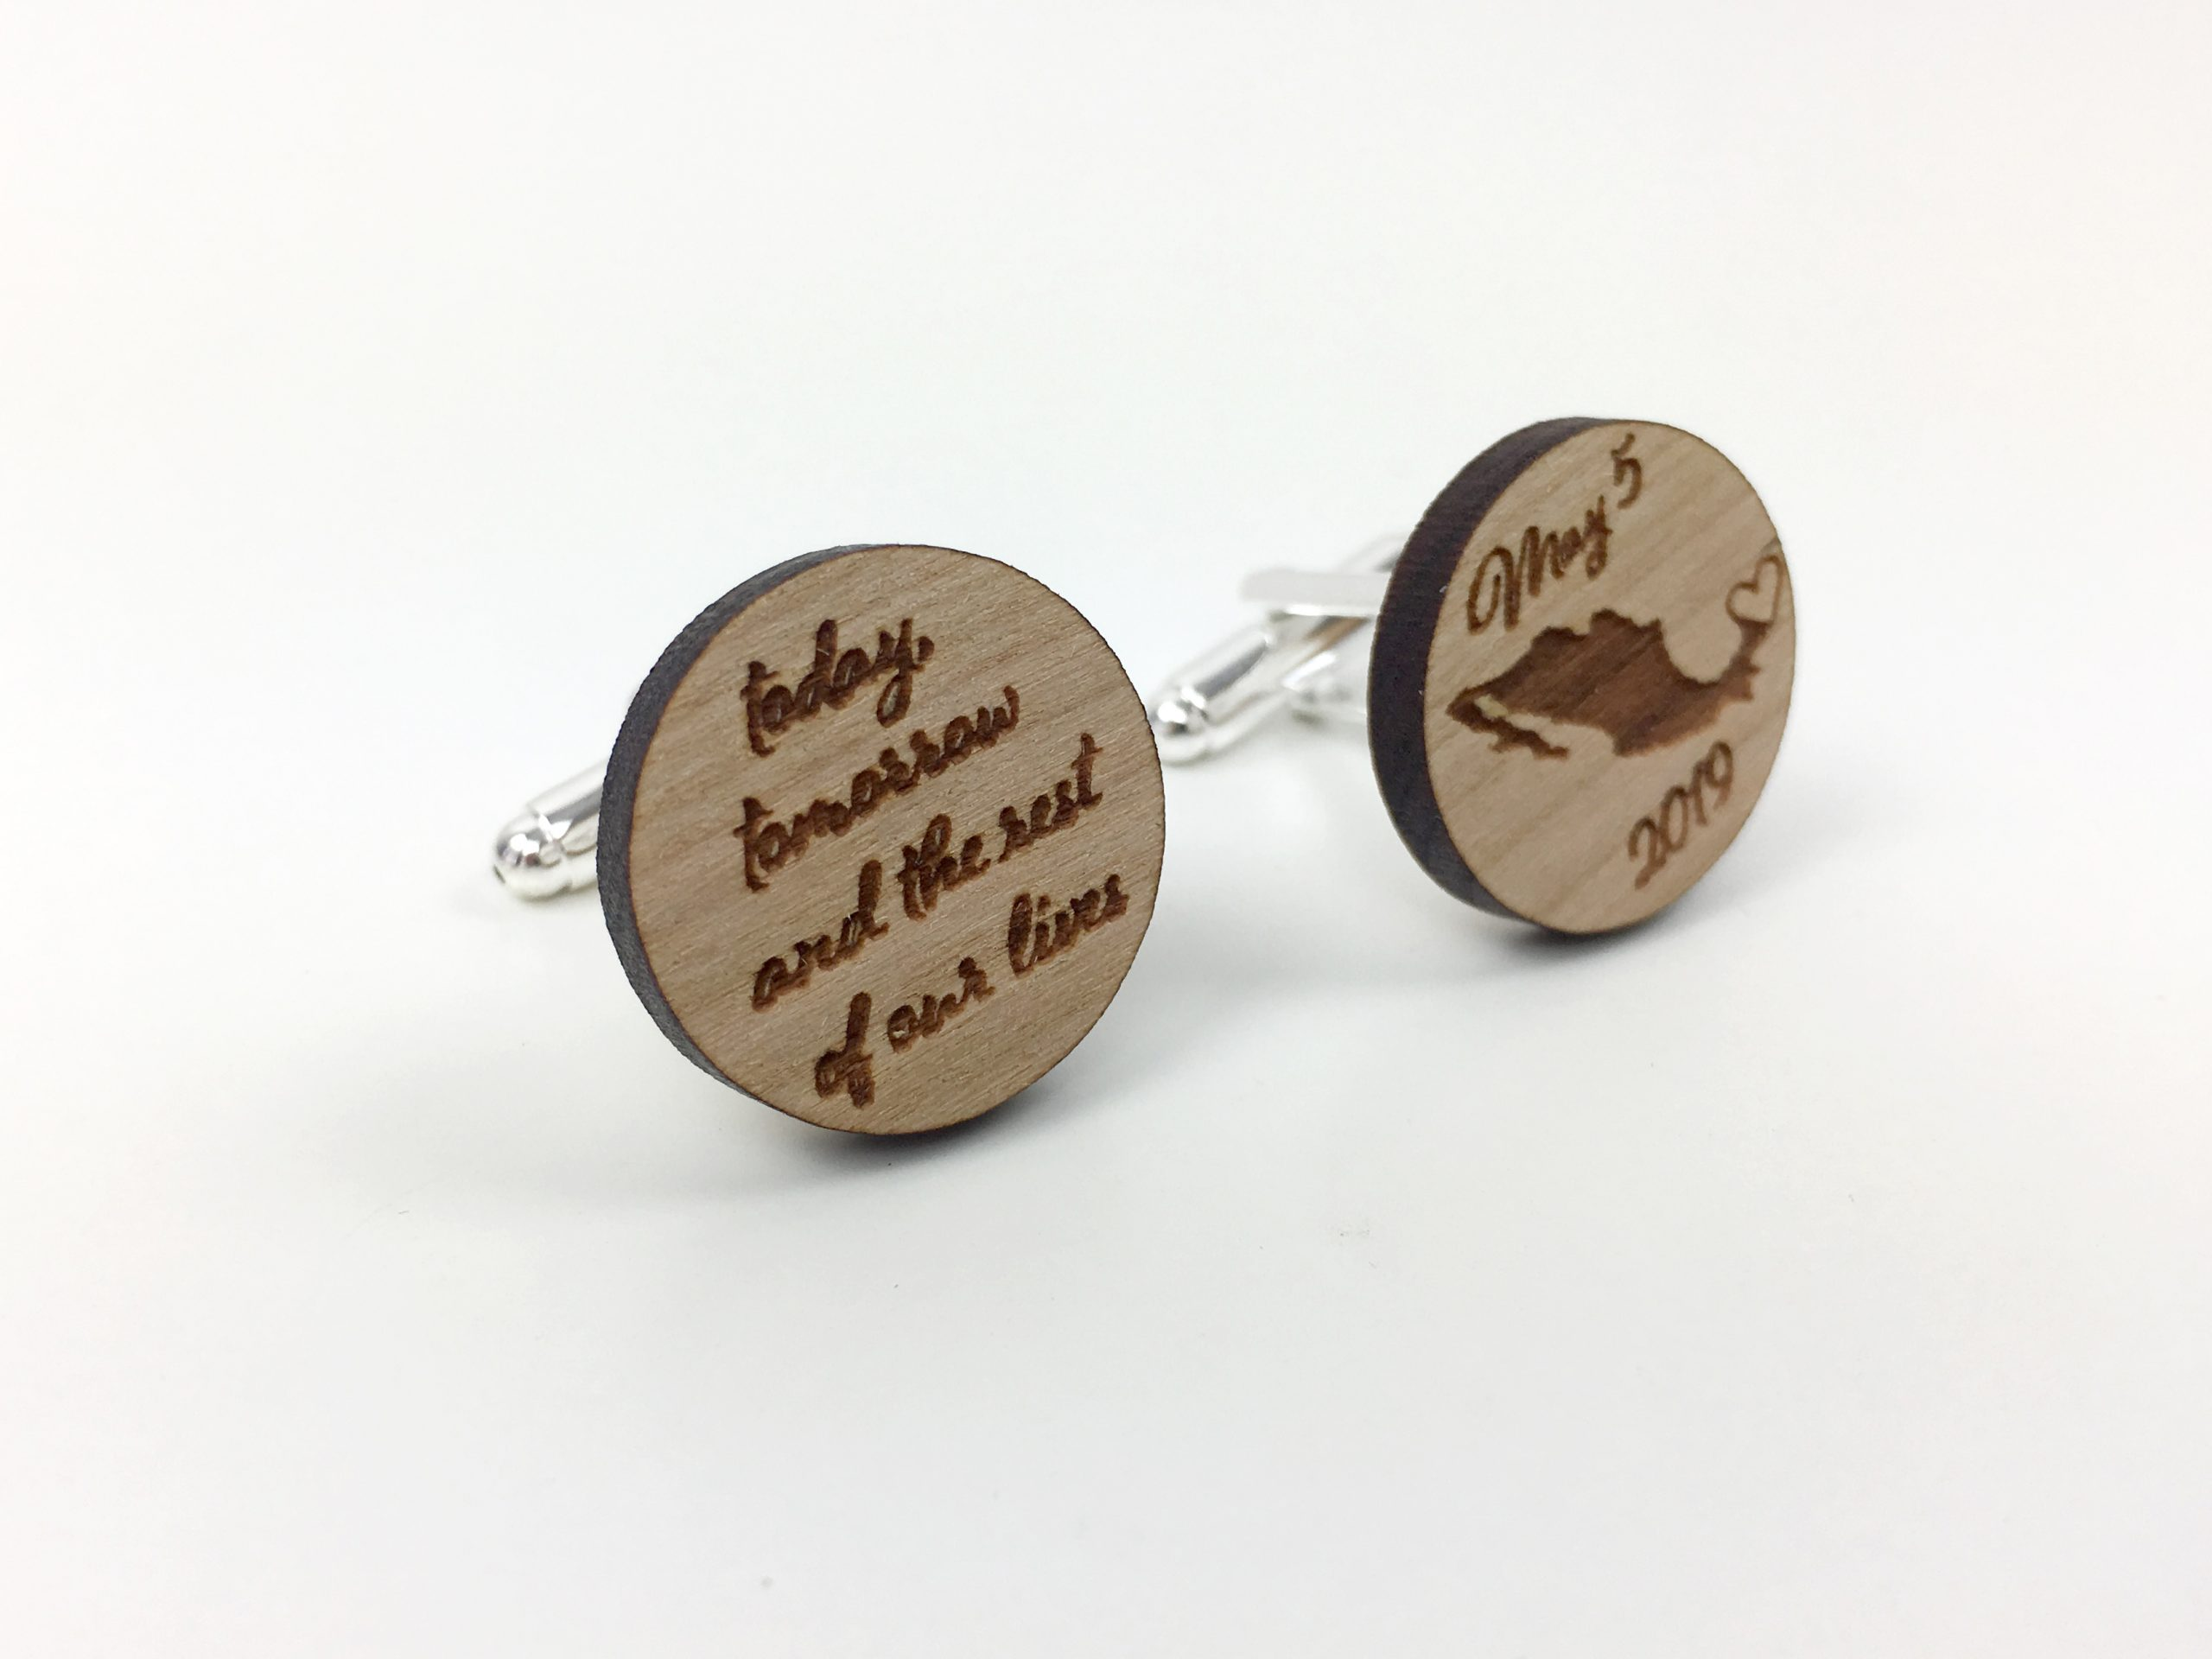 Unique Wood Encased Resin Illusion Mens Gift cuff links Wedding Gift Cuff links by CUFFLINKS DIRECT Anniversary Personalised engraved